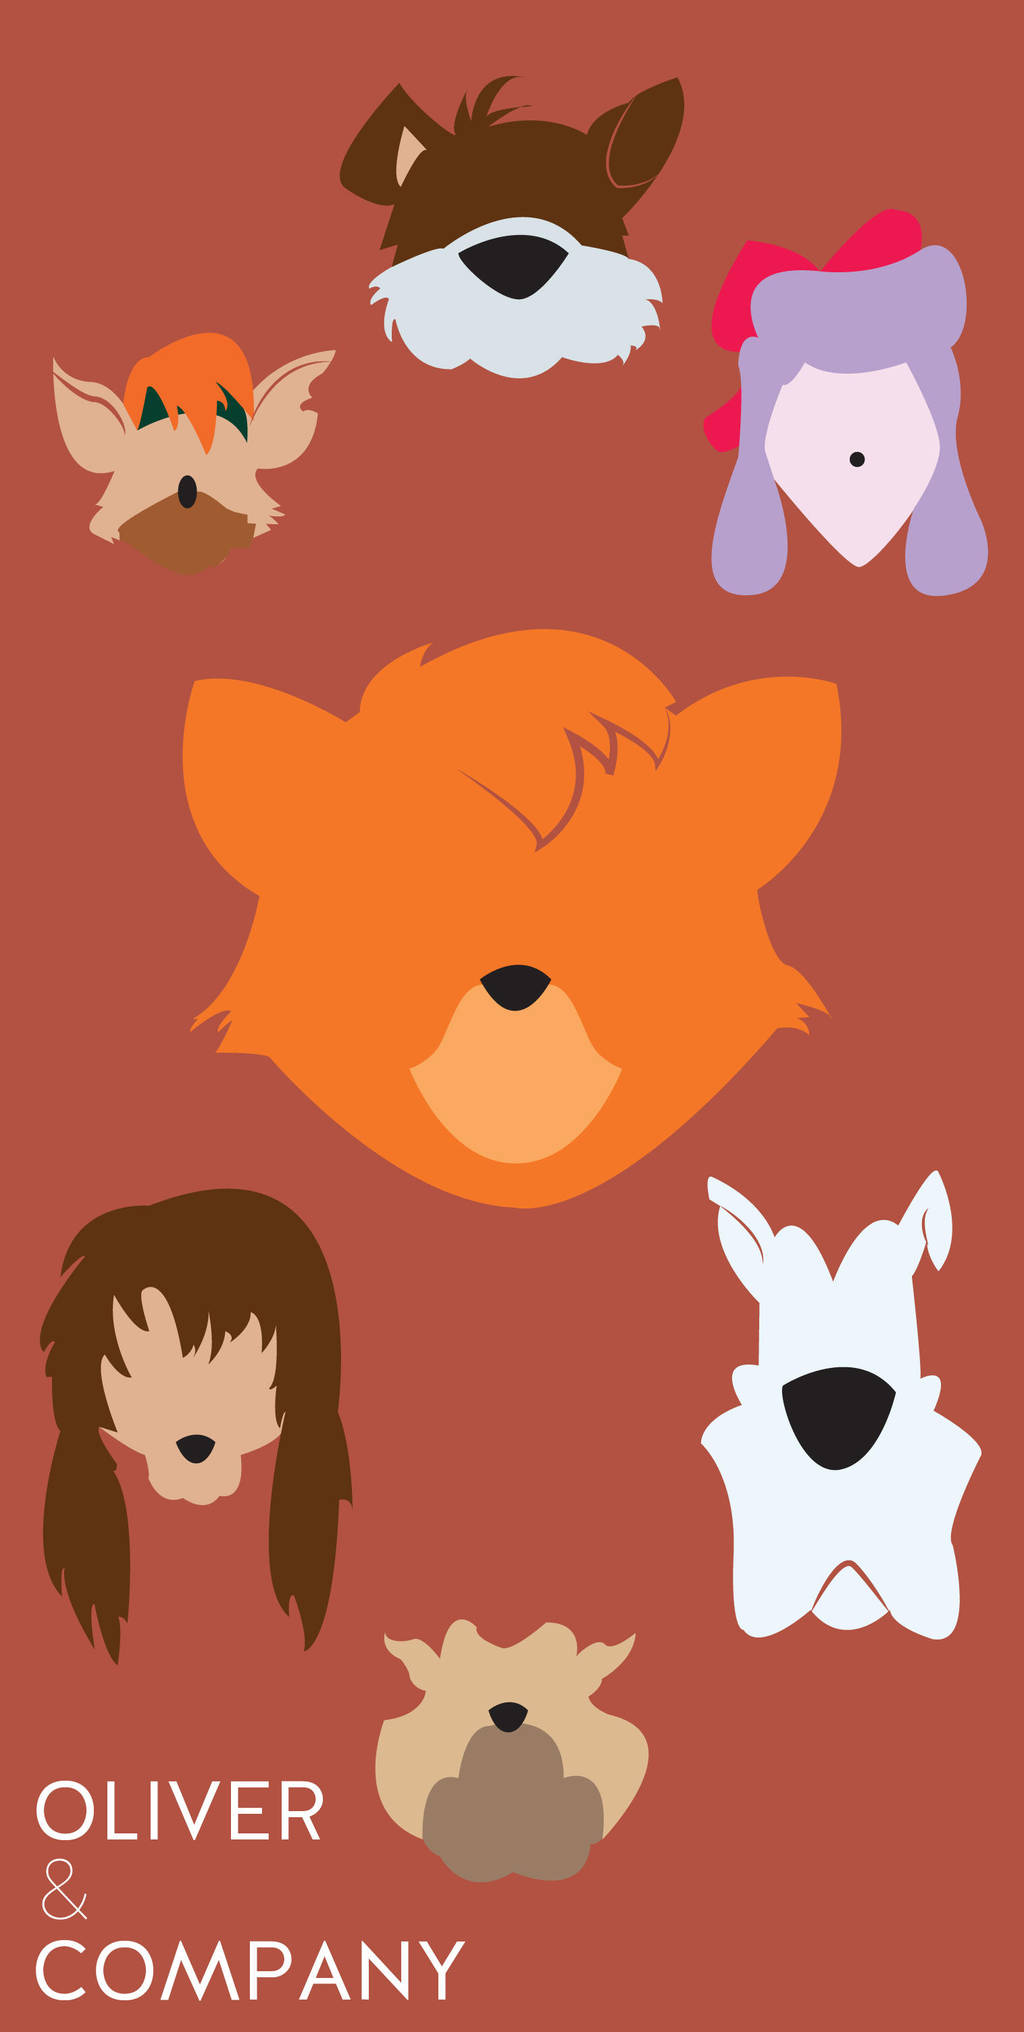 Oliver and Company by BryceDoherty on DeviantArt